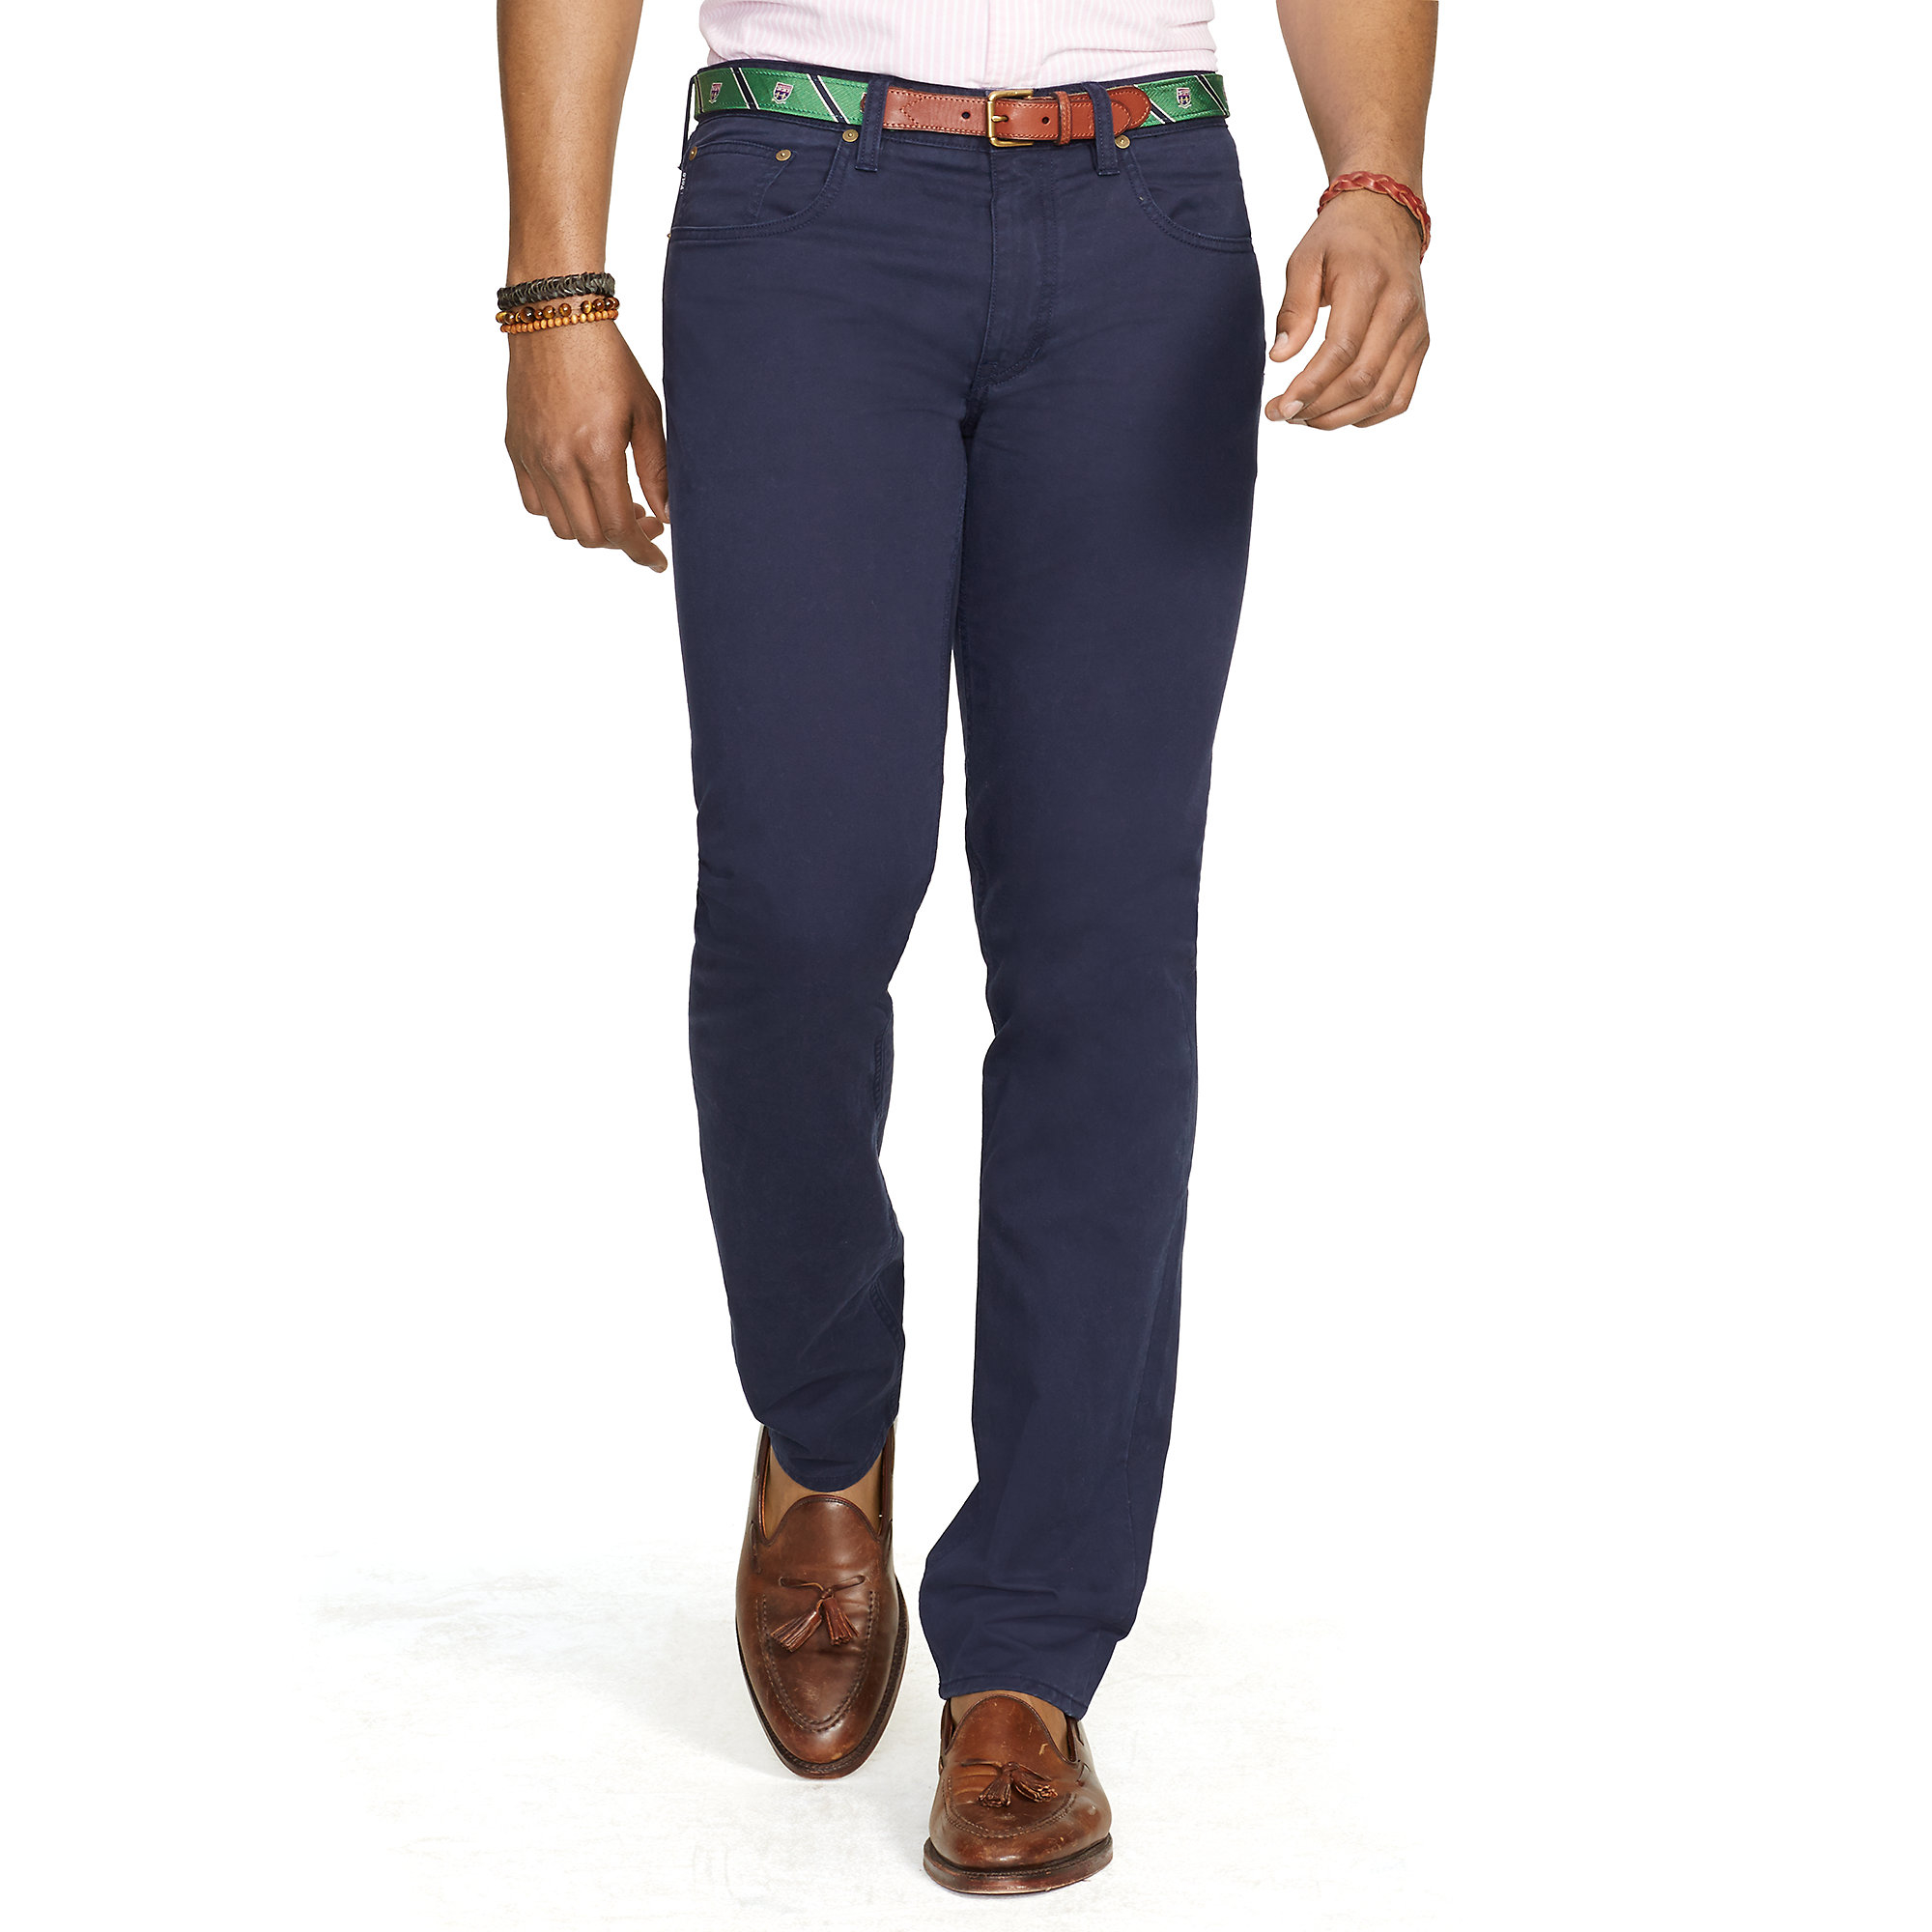 e1b4ca7fa050 Lyst - Polo Ralph Lauren Slim Stretch 5-pocket Pant in Blue for Men